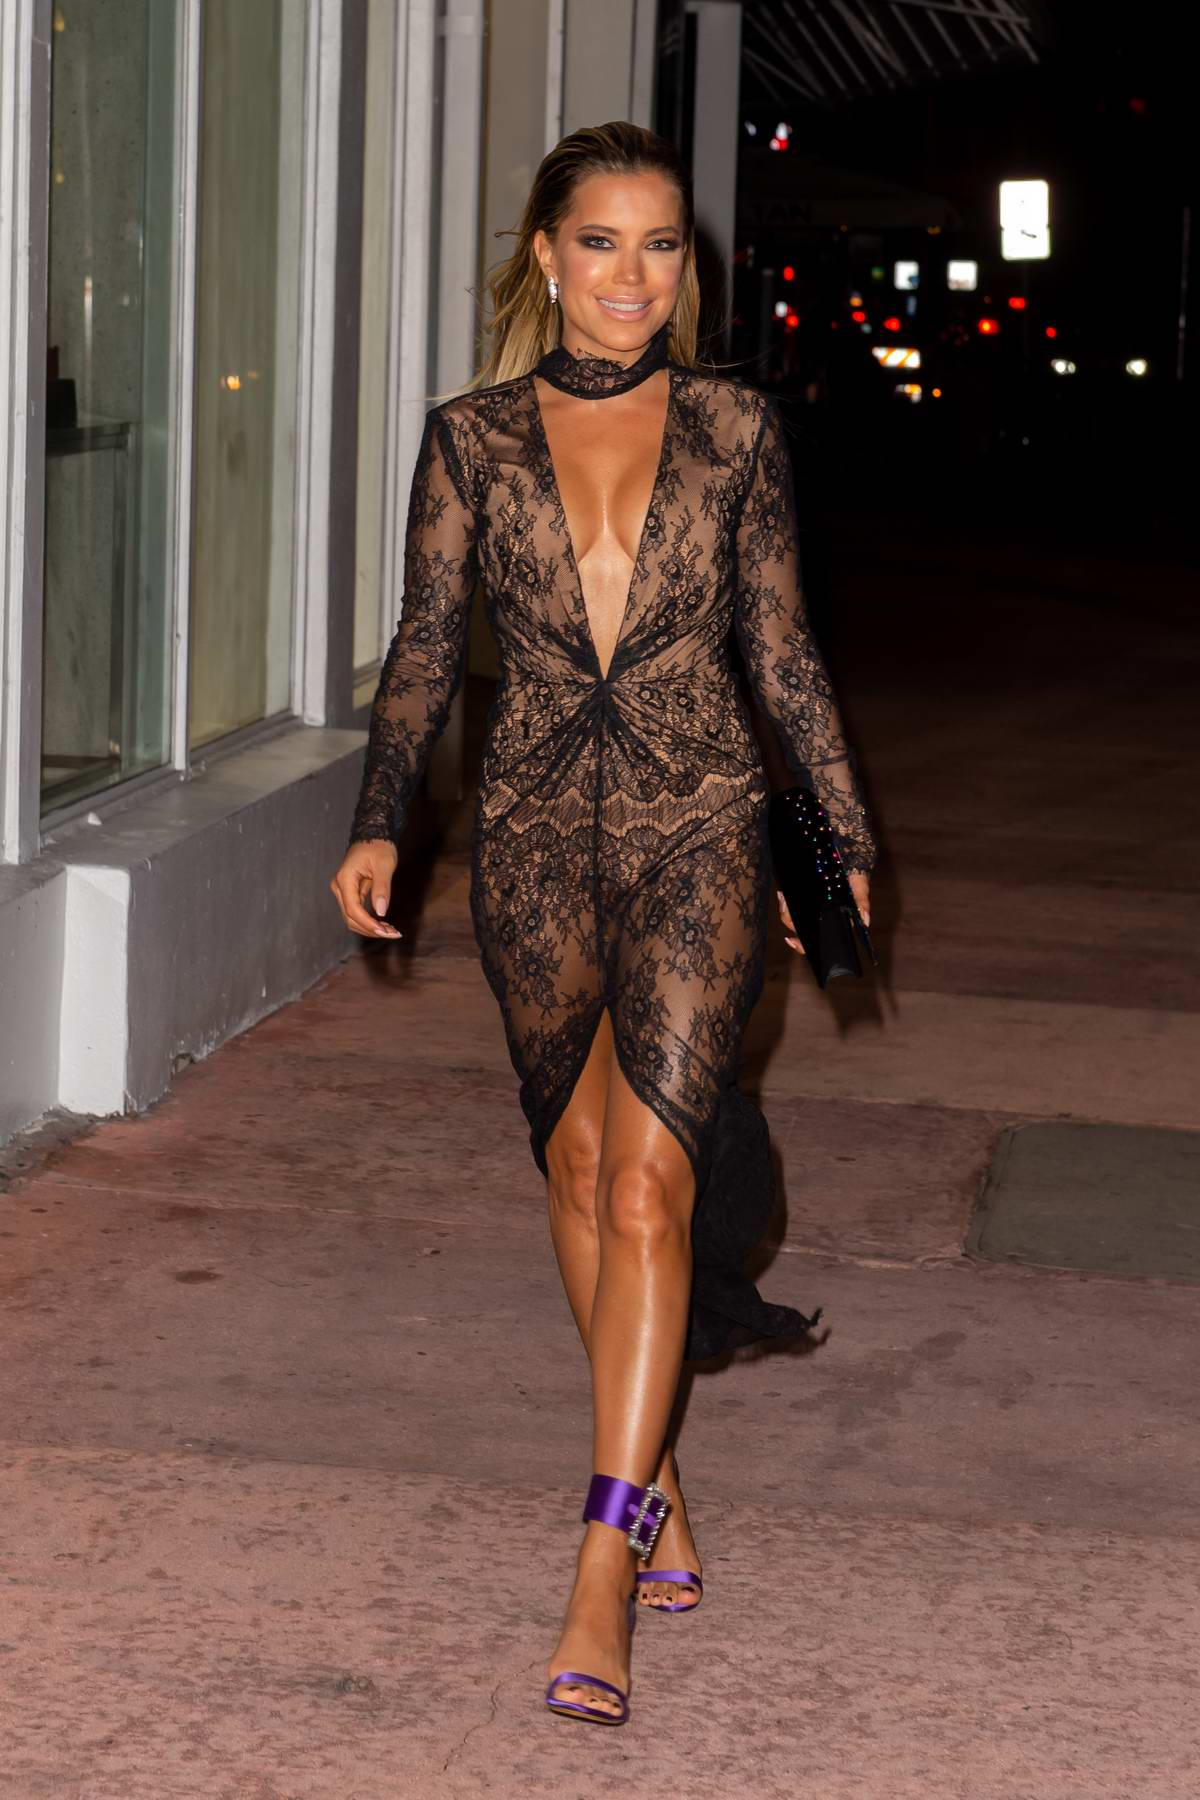 Sylvie Meis wearing a sheer low cut dress as she heads out to dinner in Miami  Beach bde59717f